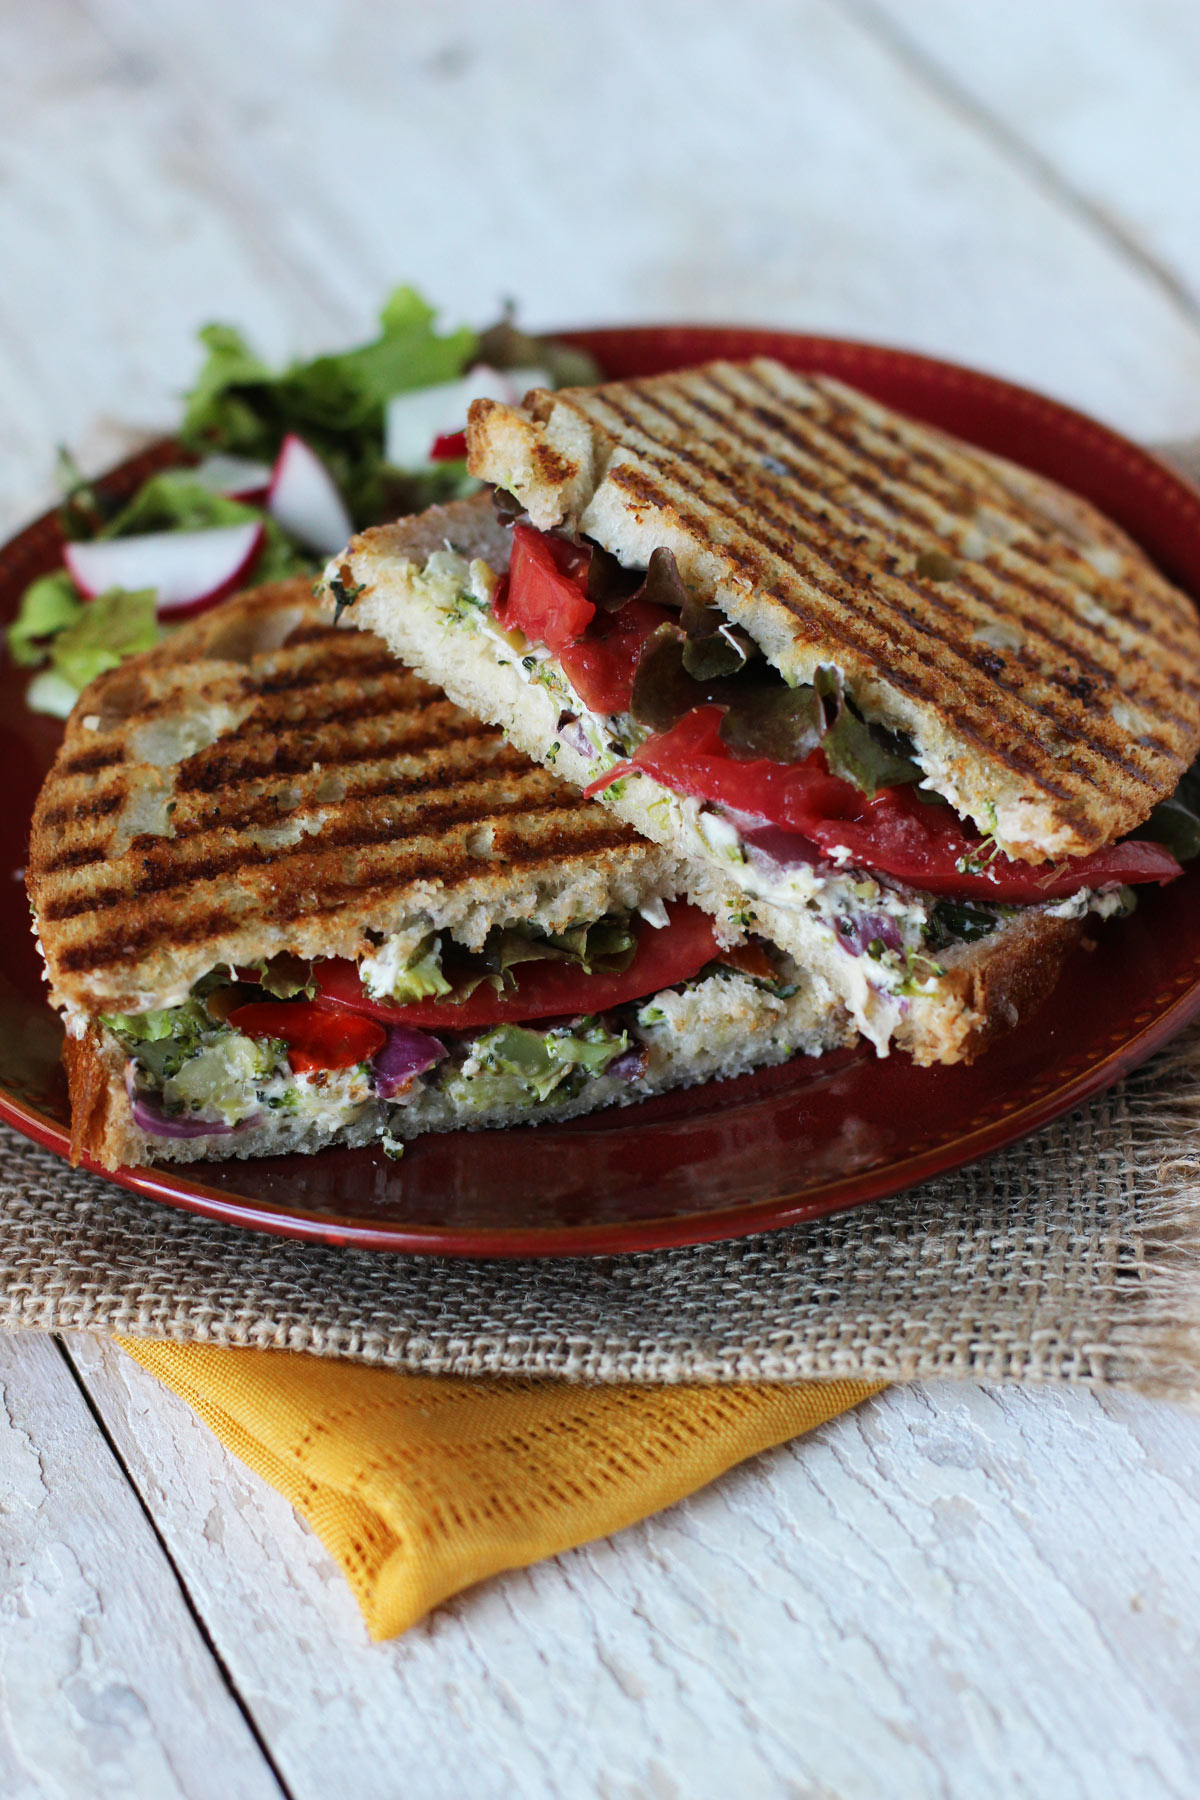 Roasted Vegetable & Herbed Goat Cheese Paninis | Carpé Season